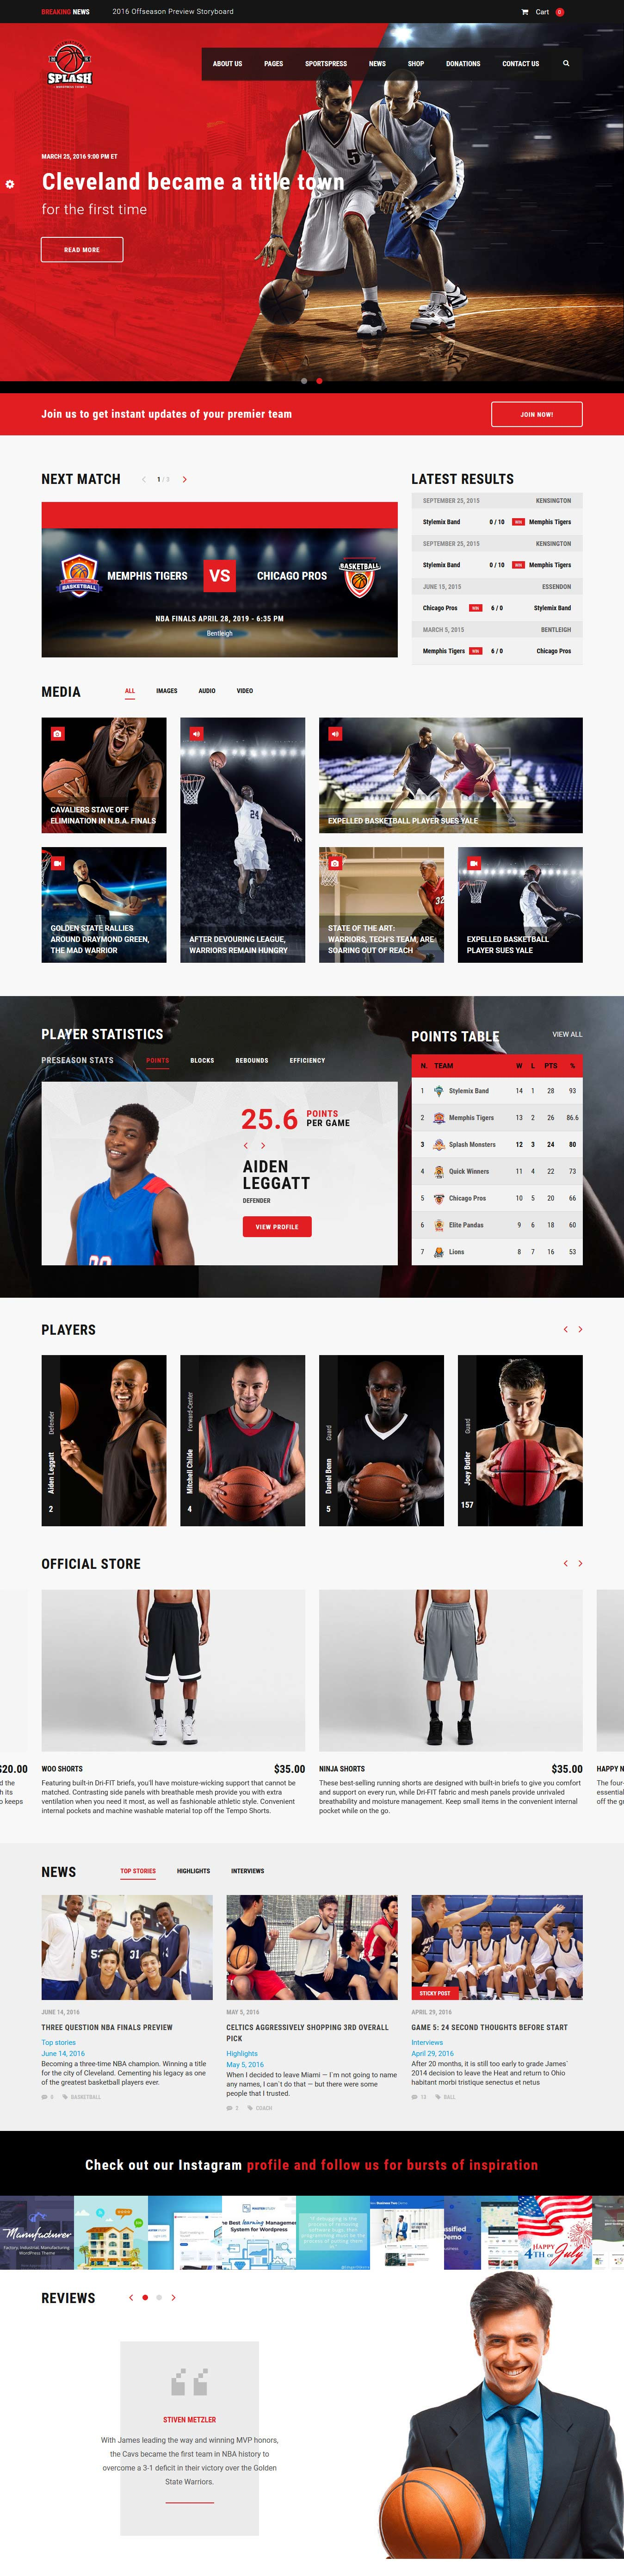 Splash -Best Premium Sports WordPress Theme